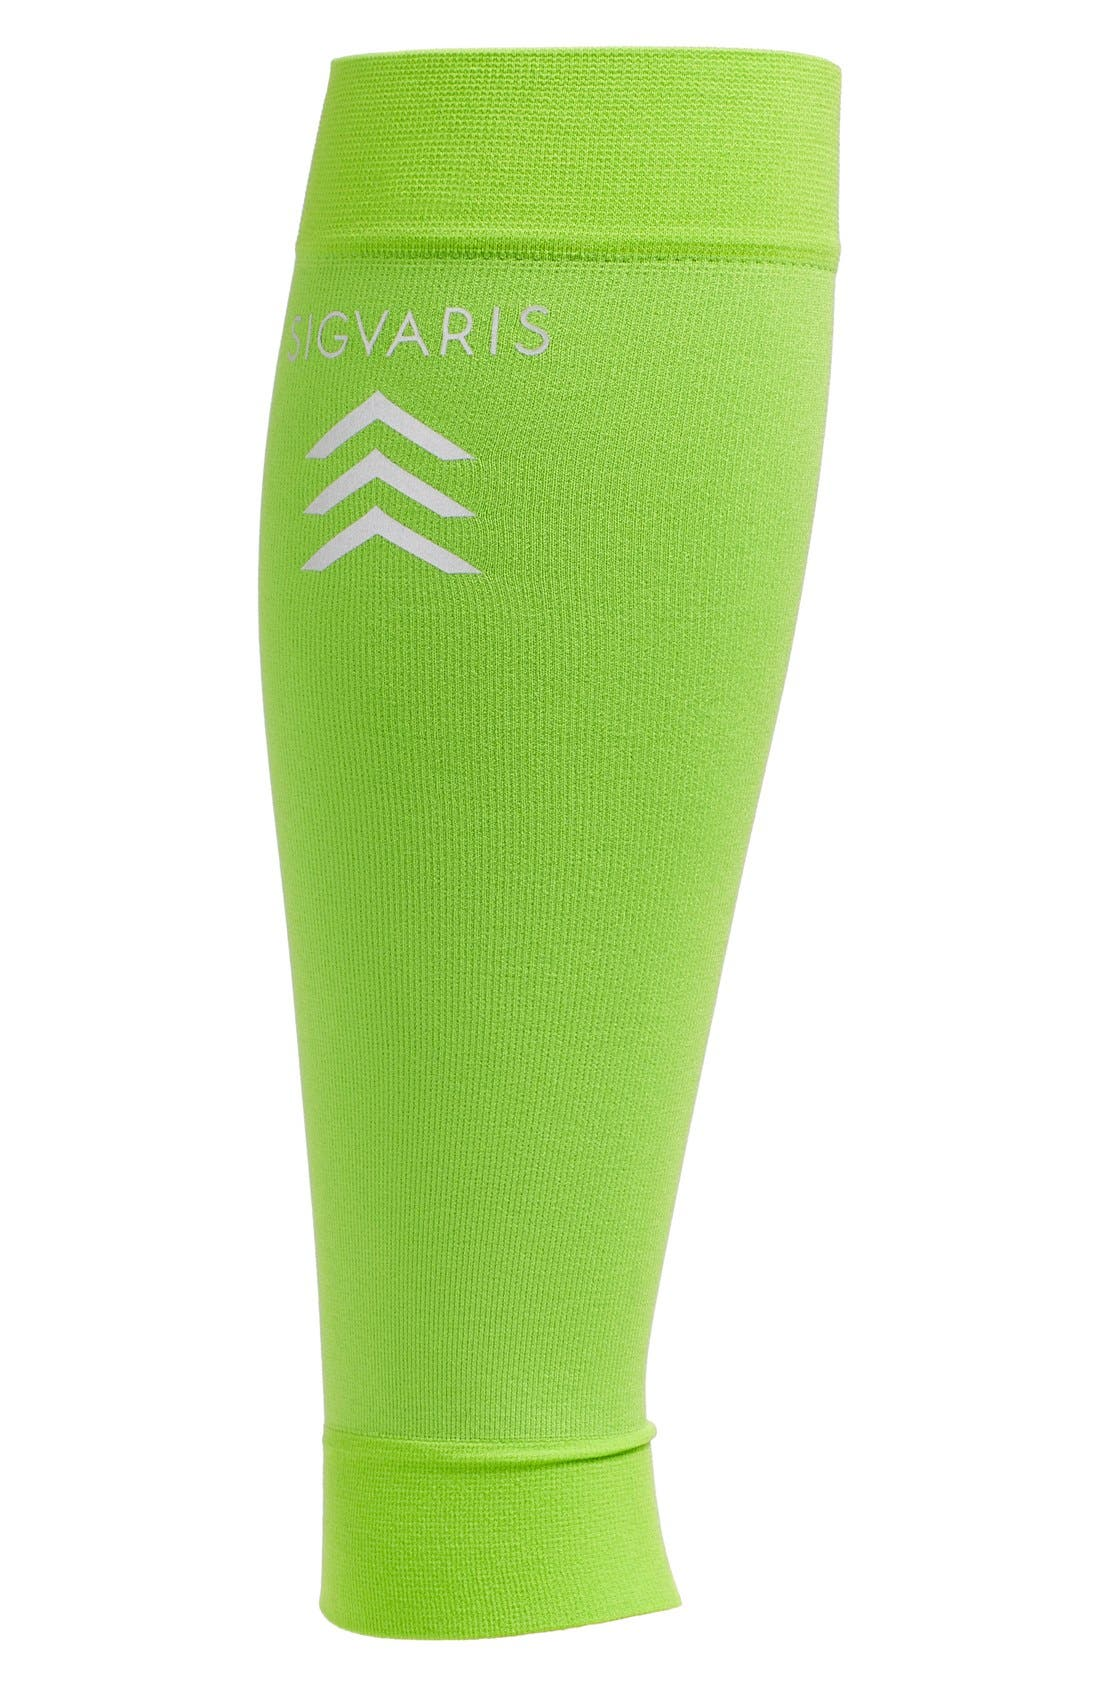 'Sports' Graduated Compression Performance Calf Sleeve,                             Main thumbnail 1, color,                             Lime